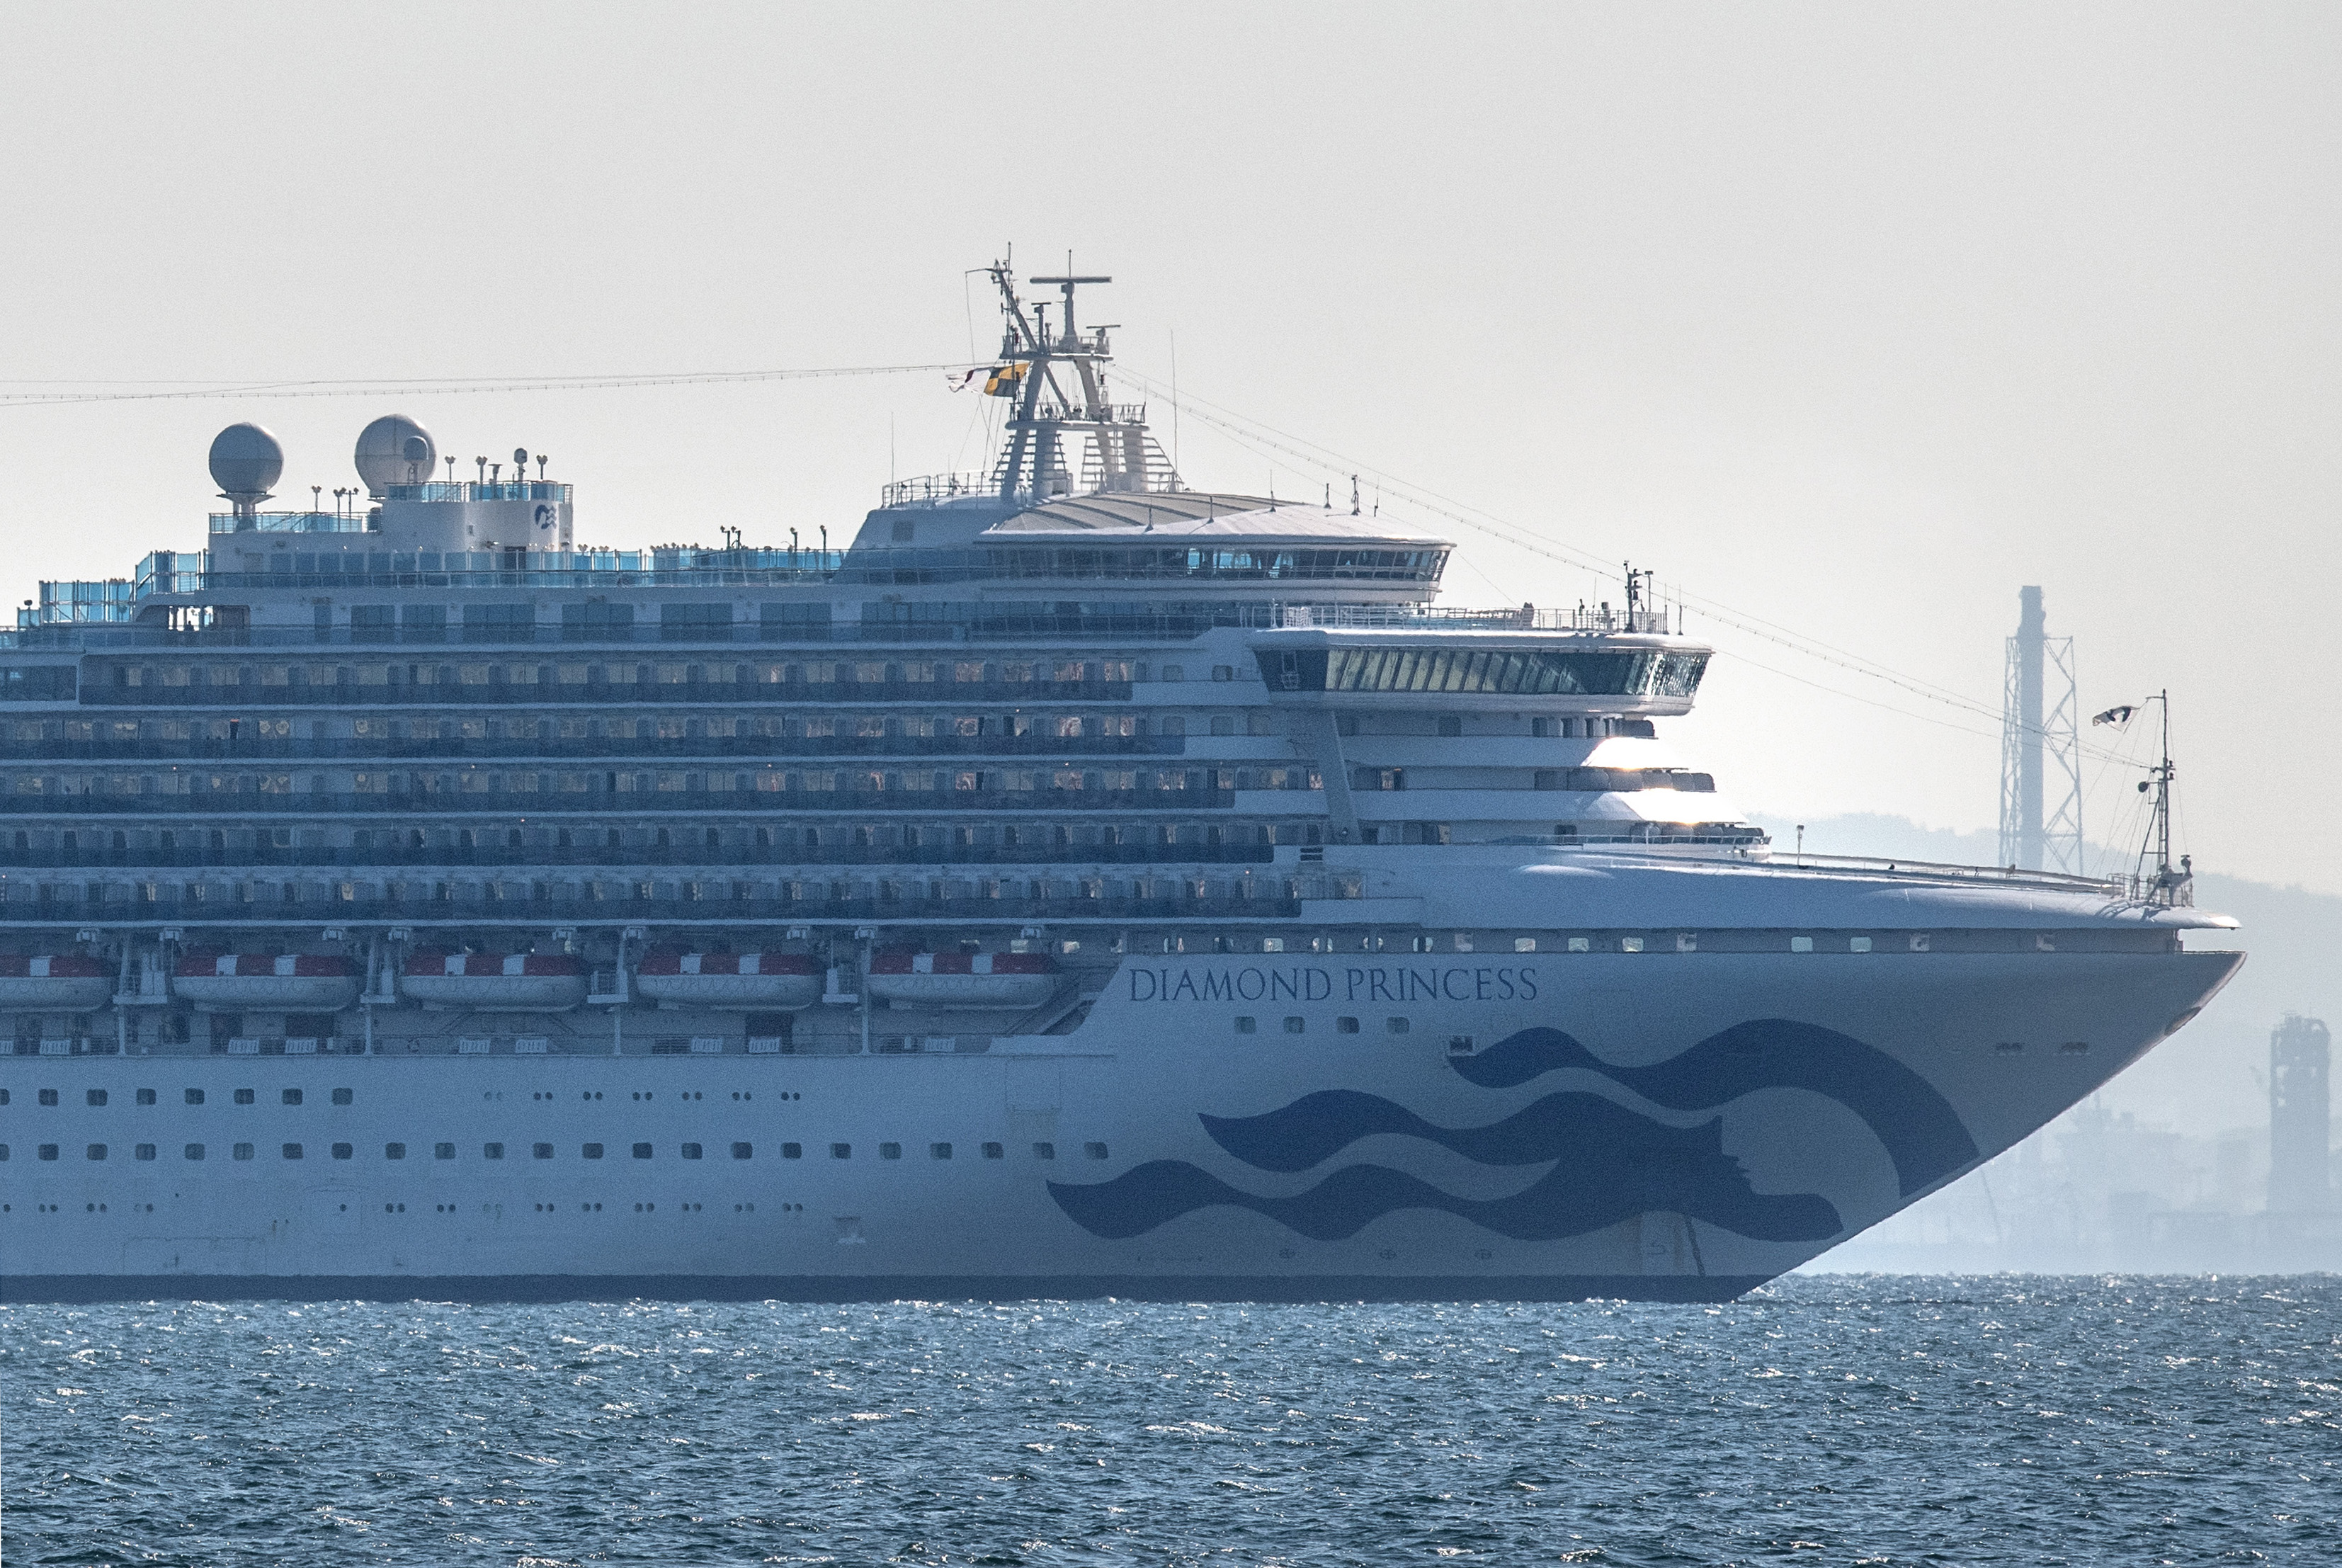 YOKOHAMA, JAPAN - FEBRUARY 05: The Diamond Princess cruise ship with around 3,700 people on board sits anchored in quarantine off the port of Yokohama after a number of passengers were confirmed to be infected with coronavirus, on February 5, 2020 in Yokohama, Japan. 10 passengers are now believed to be infected with the coronavirus as Japanese authorities work to screen all people on board. The new cases bring the total number of confirmed infections to 33 in Japan. (Photo by Carl Court/Getty Images)